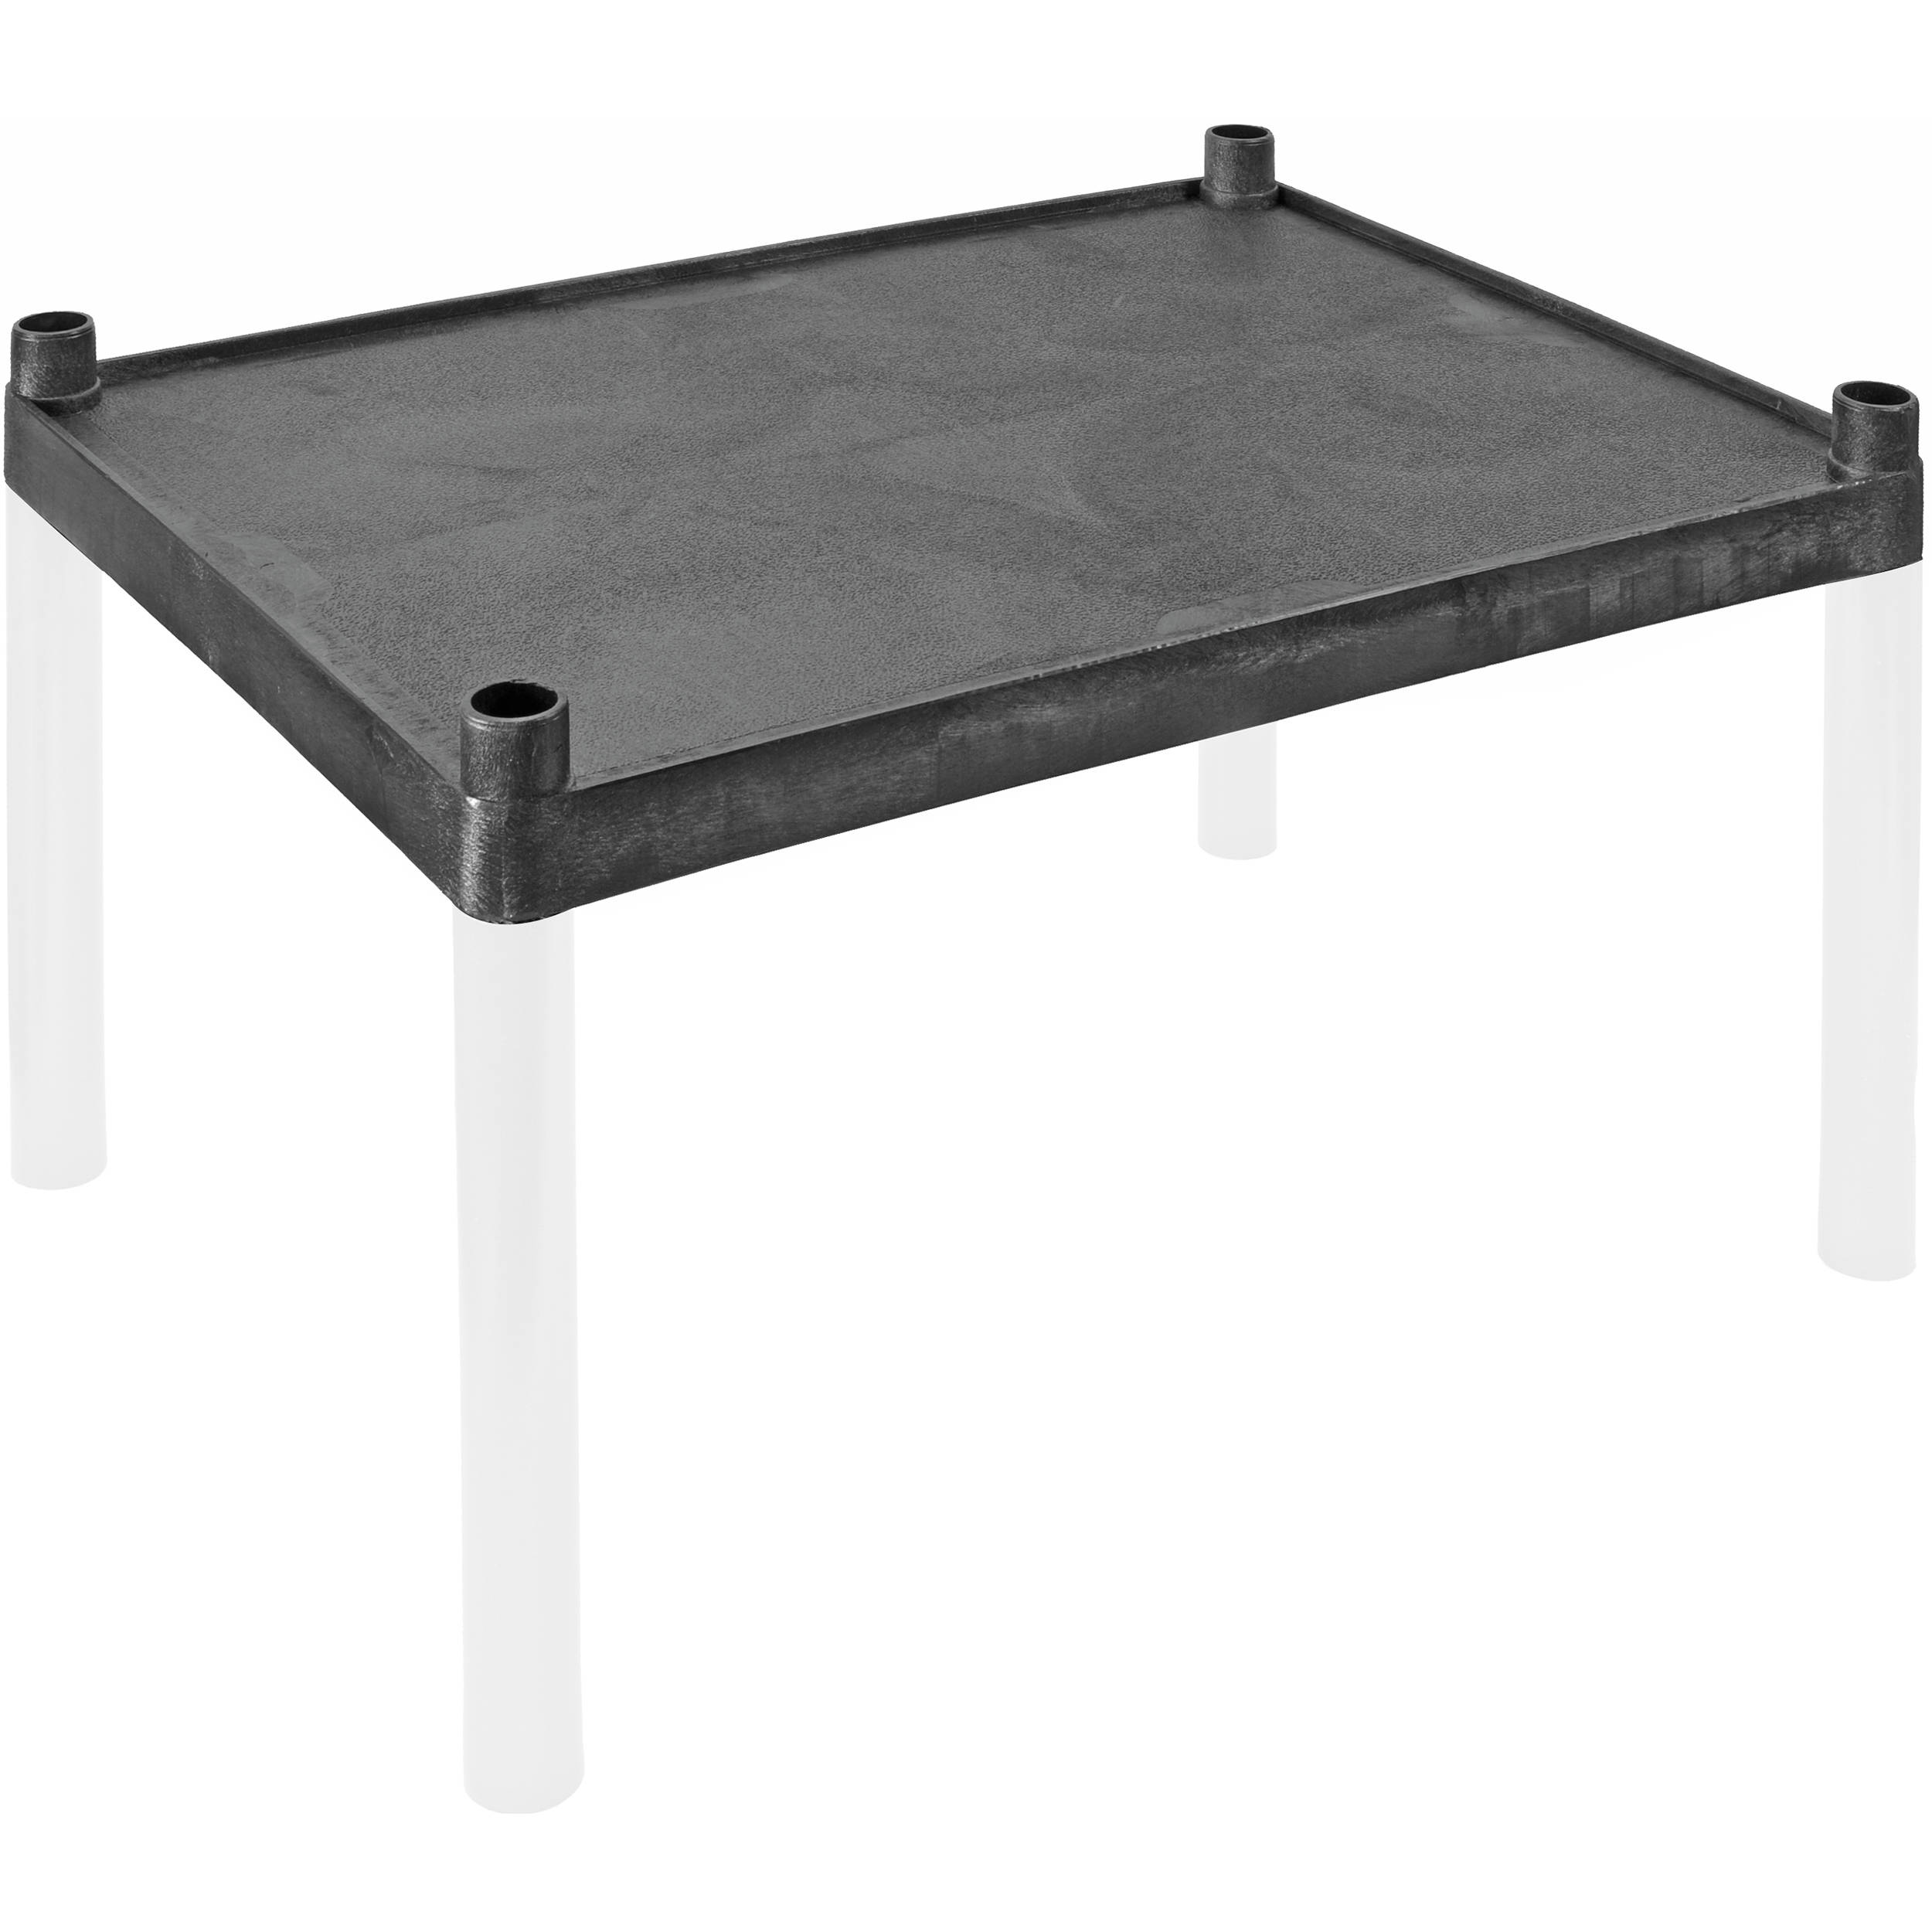 Luxor Middle Shelf for Tub Cart NB 91208 B&H Photo Video